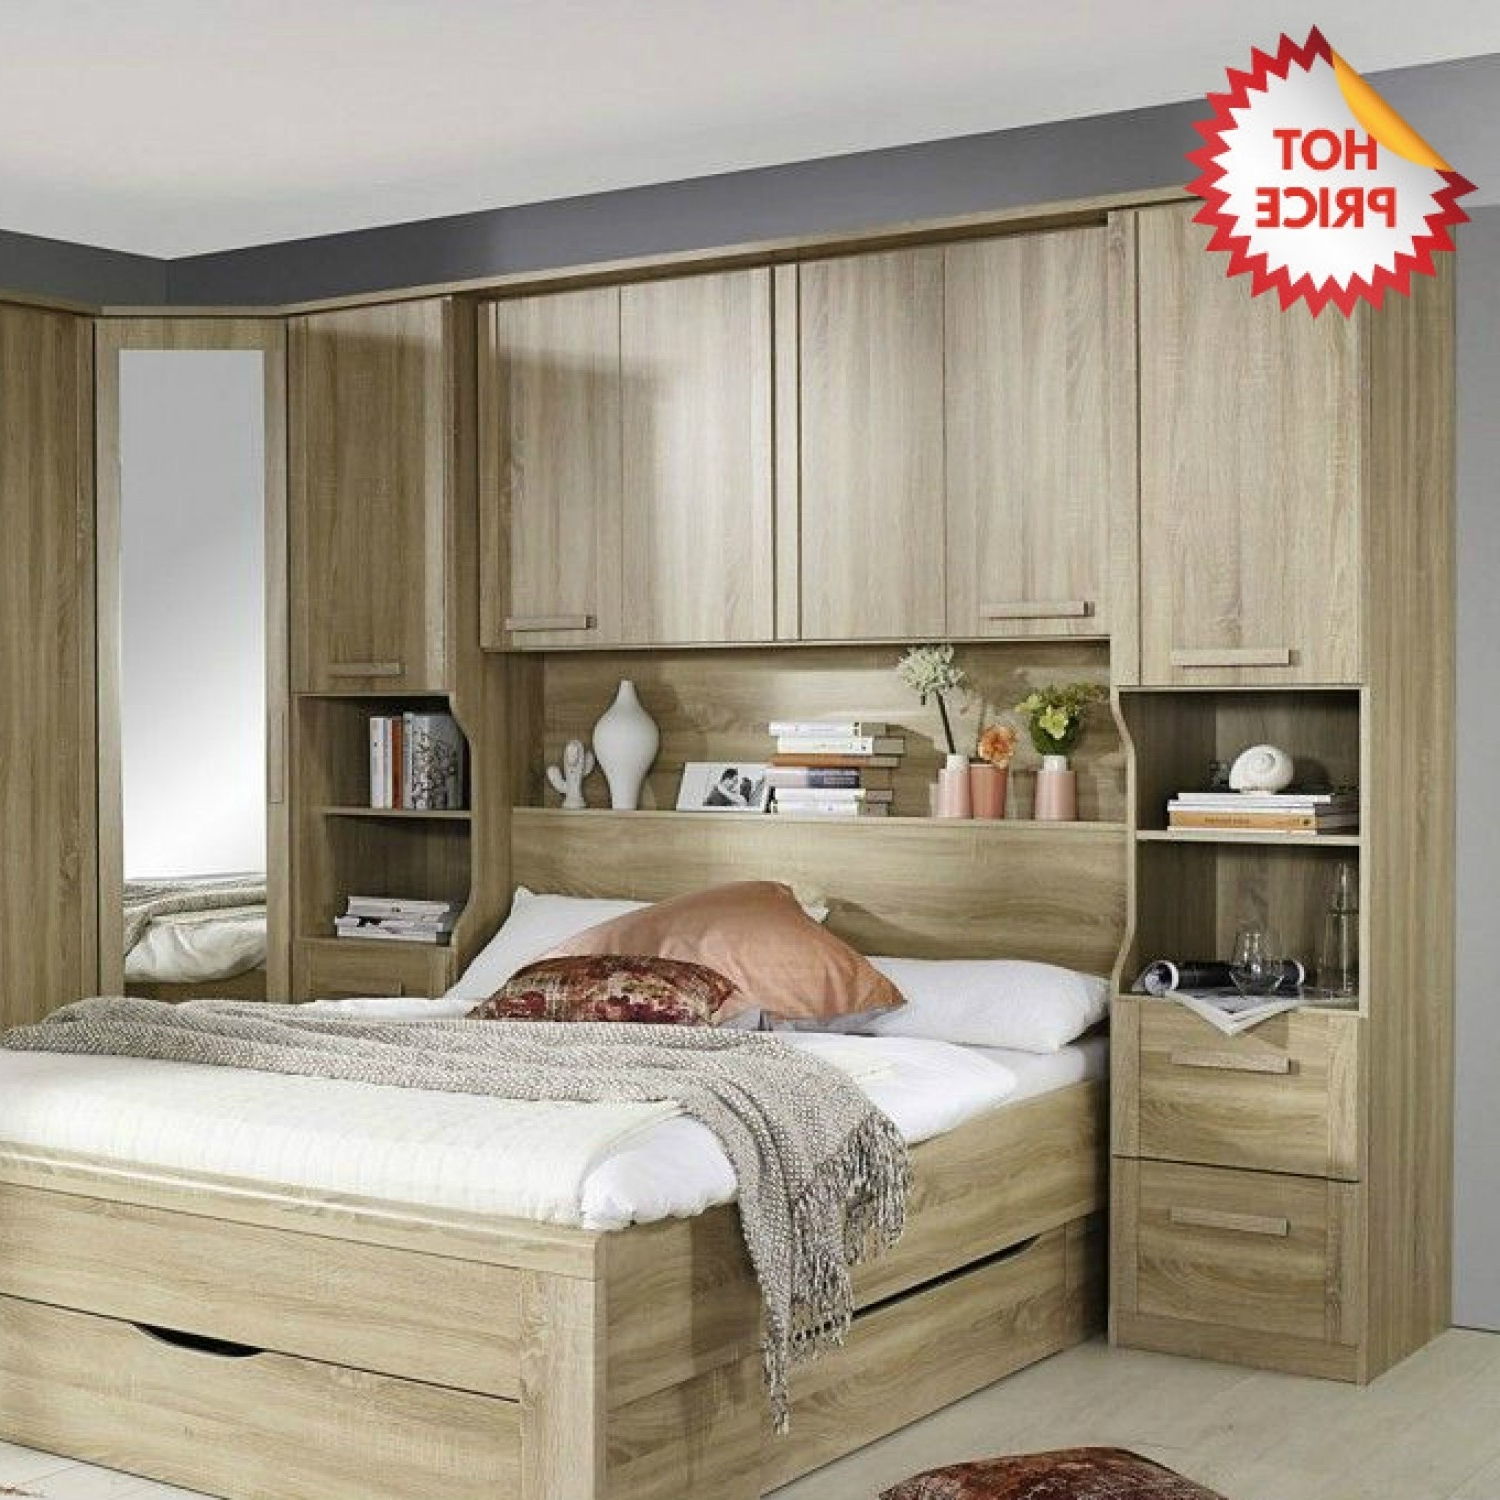 Popular Rauch Rivera Overbed Bridging Unit With Wall Panel & Book Storage Throughout Overbed Wardrobes (View 14 of 15)